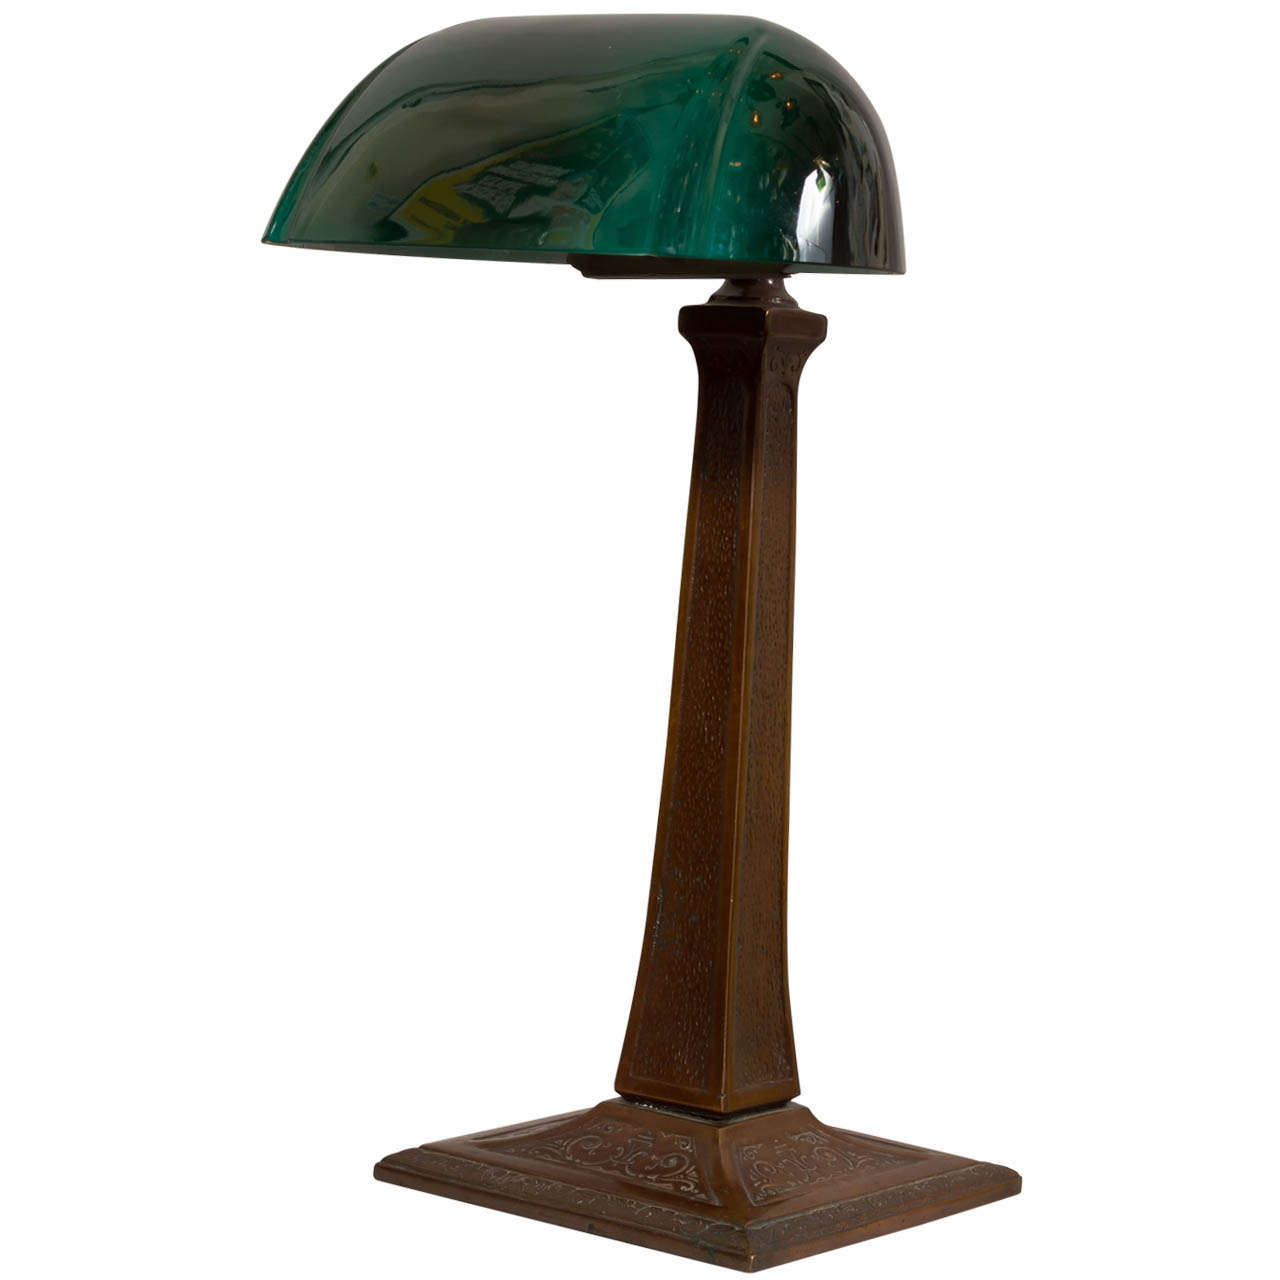 Banker's Desk Lamp with Green Shade by Aladdin 1 - Banker's Desk Lamp With Green Shade By Aladdin At 1stdibs